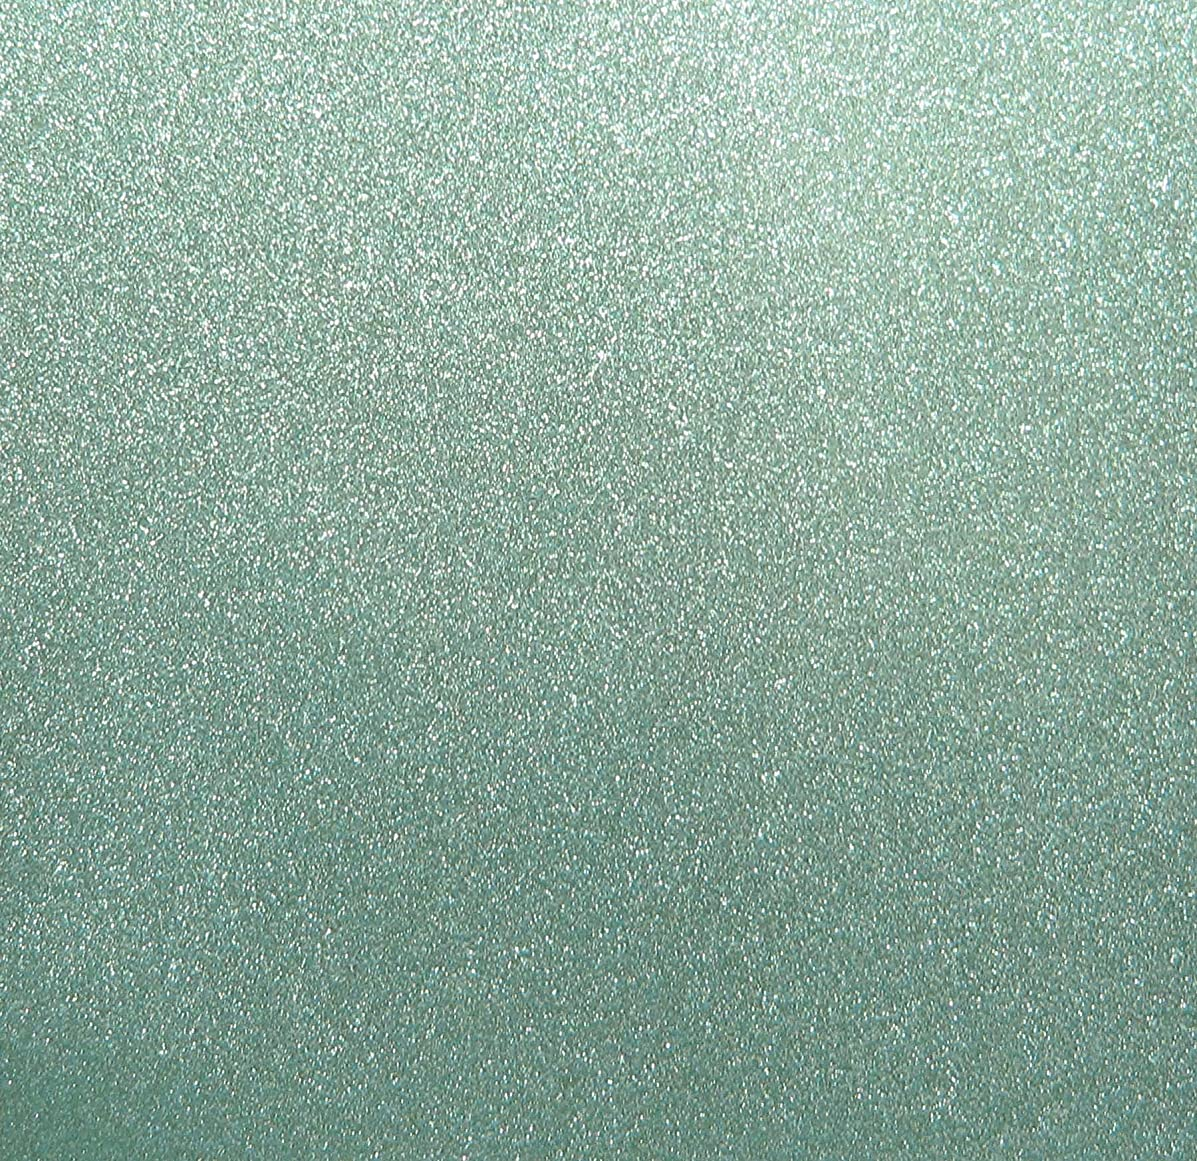 Best Creation 12-Inch by 12-Inch Glitter Cardstock, Sky Blue